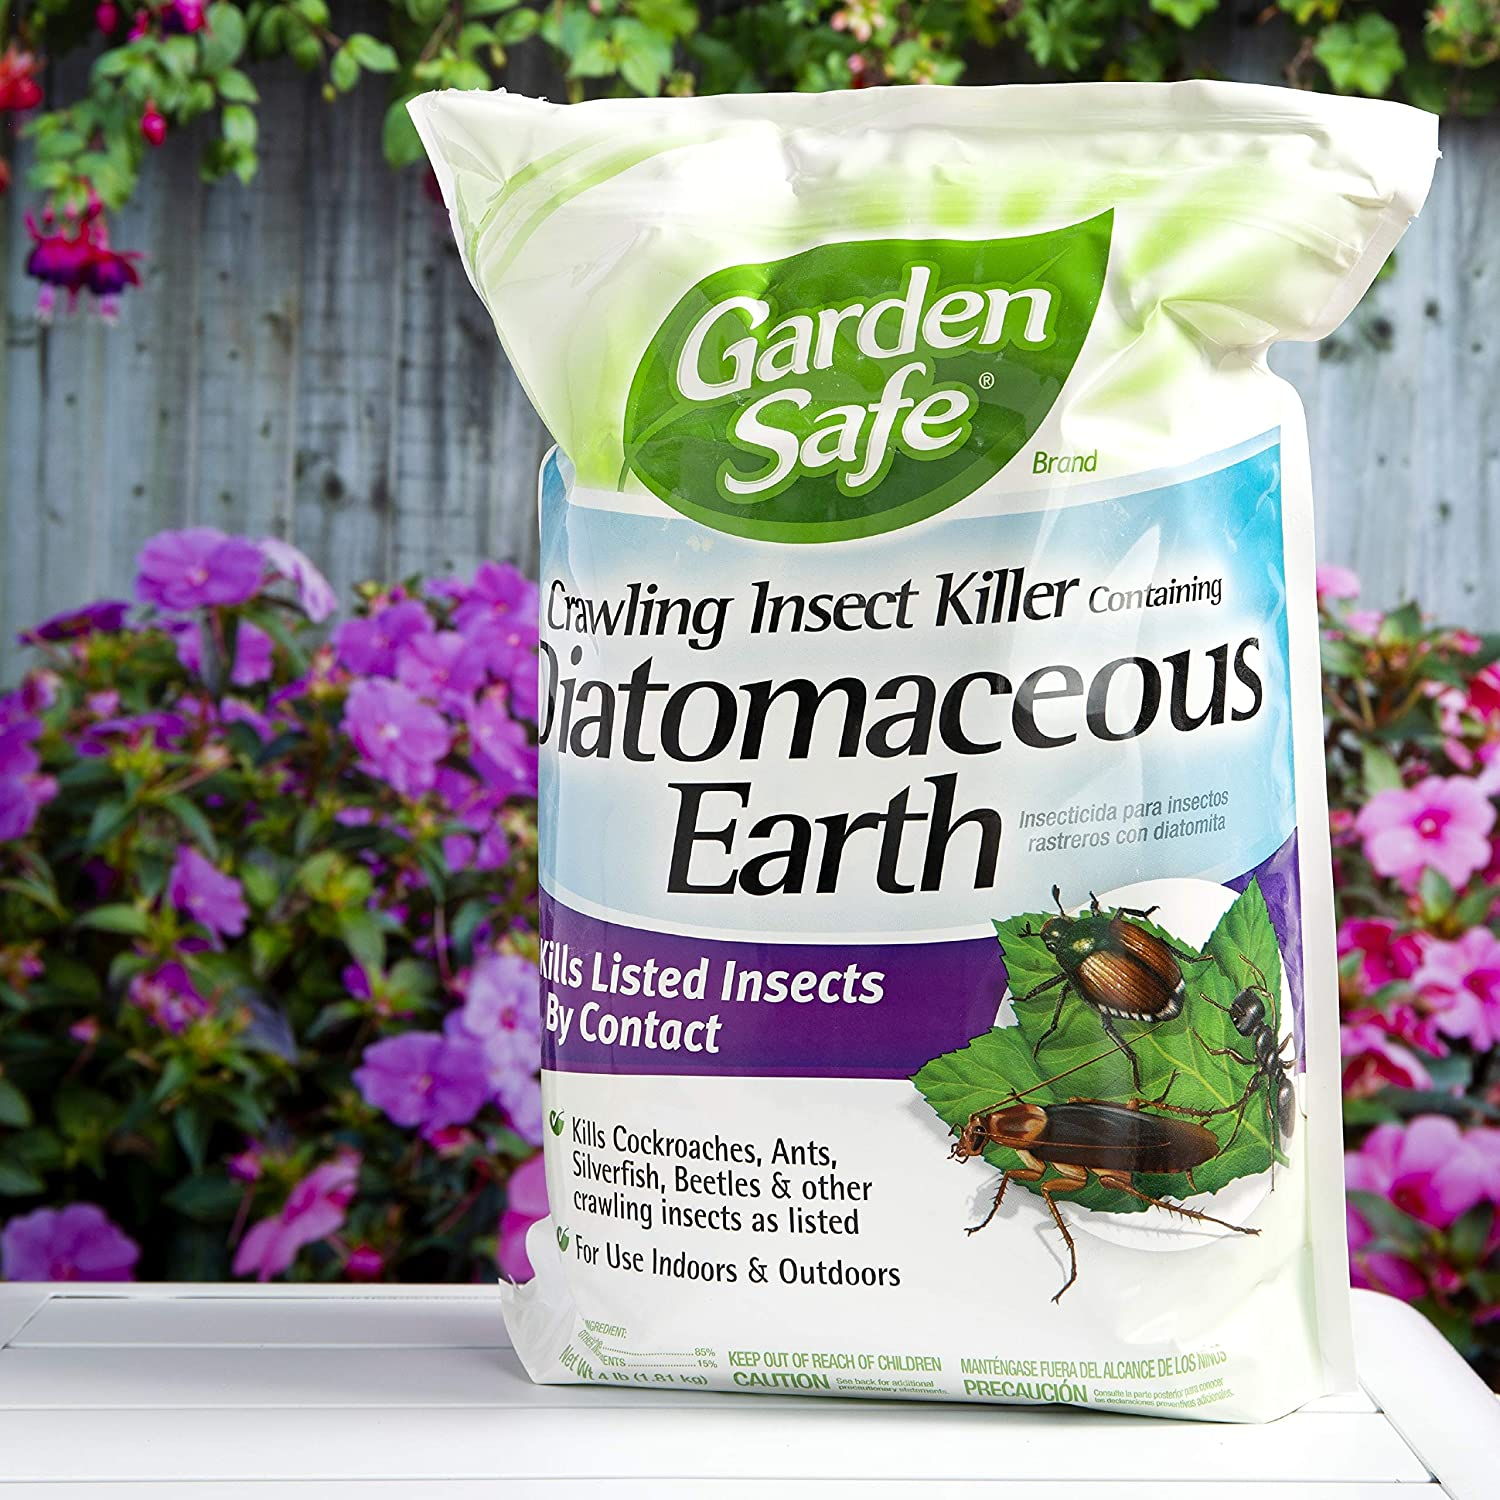 Amazon.com : Garden Safe Brand Crawling Insect Killer Containing  Diatomaceous Earth, 4-Pound : Insect Repellents : Garden & Outdoor